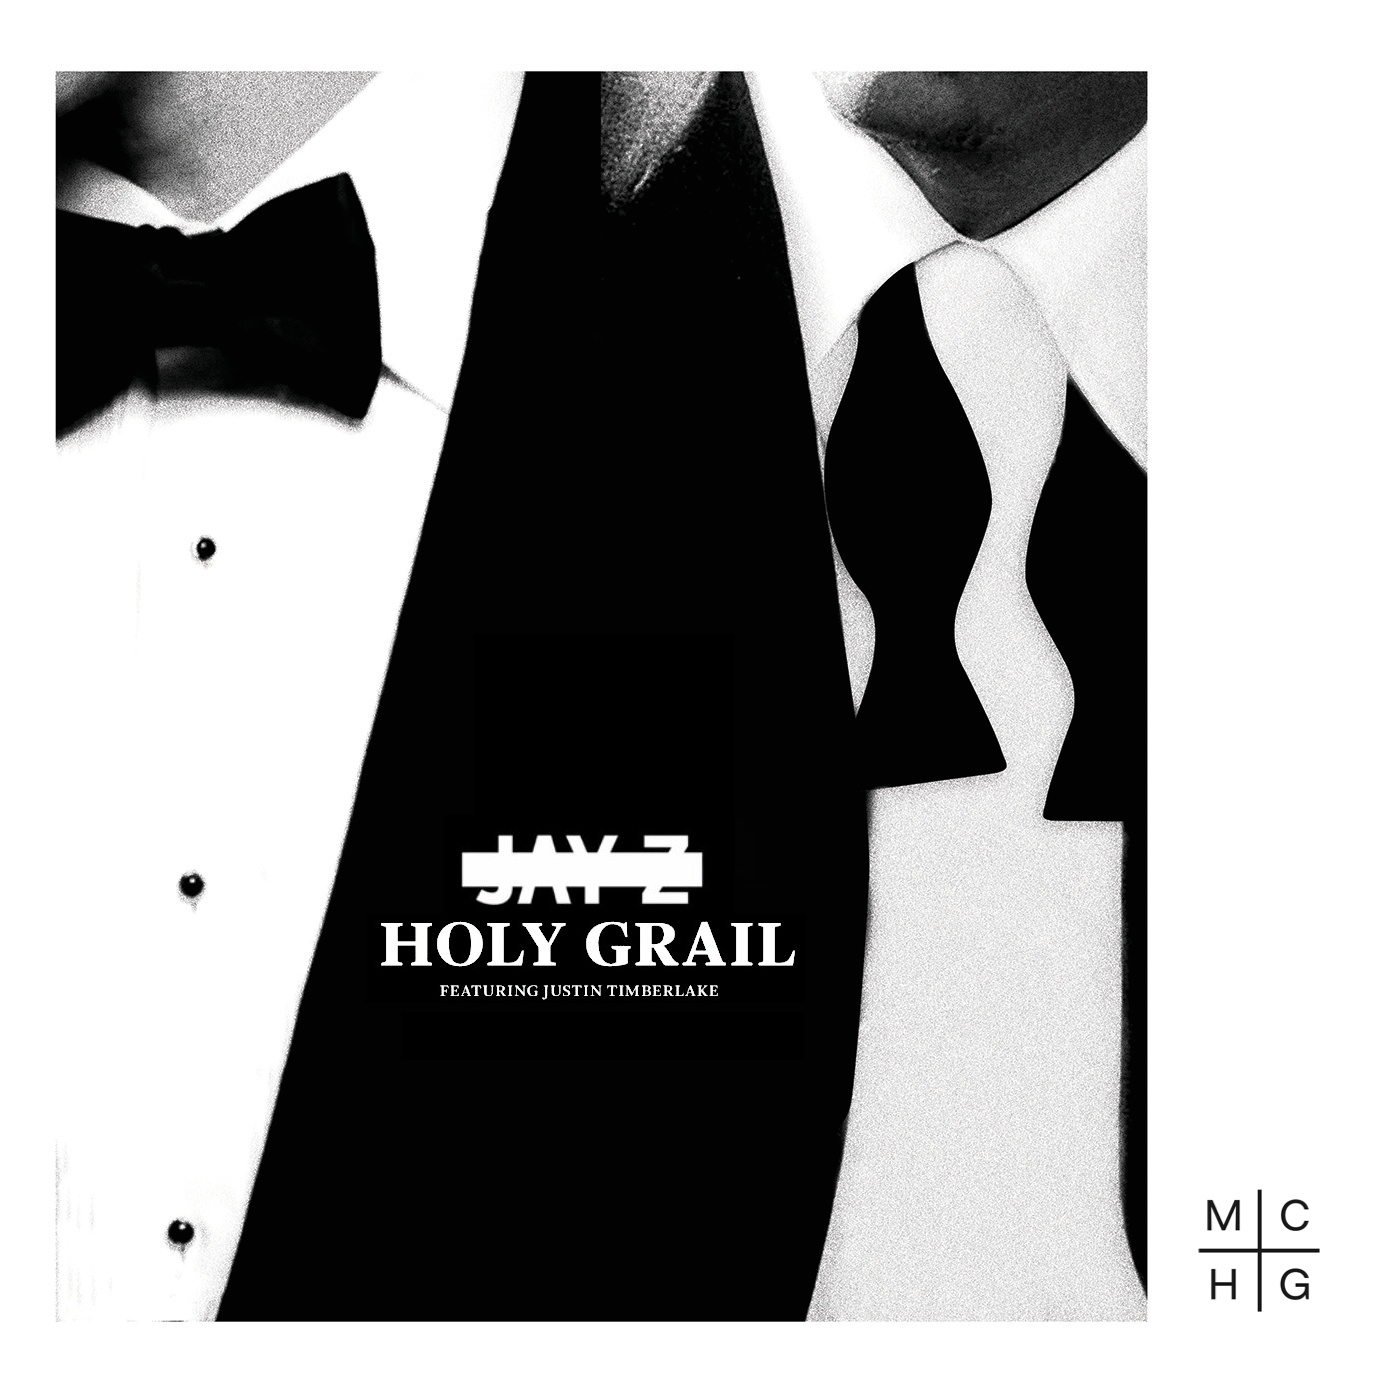 Just Cd Cover: JAY Z featuring Justin Timberlake : HOLY